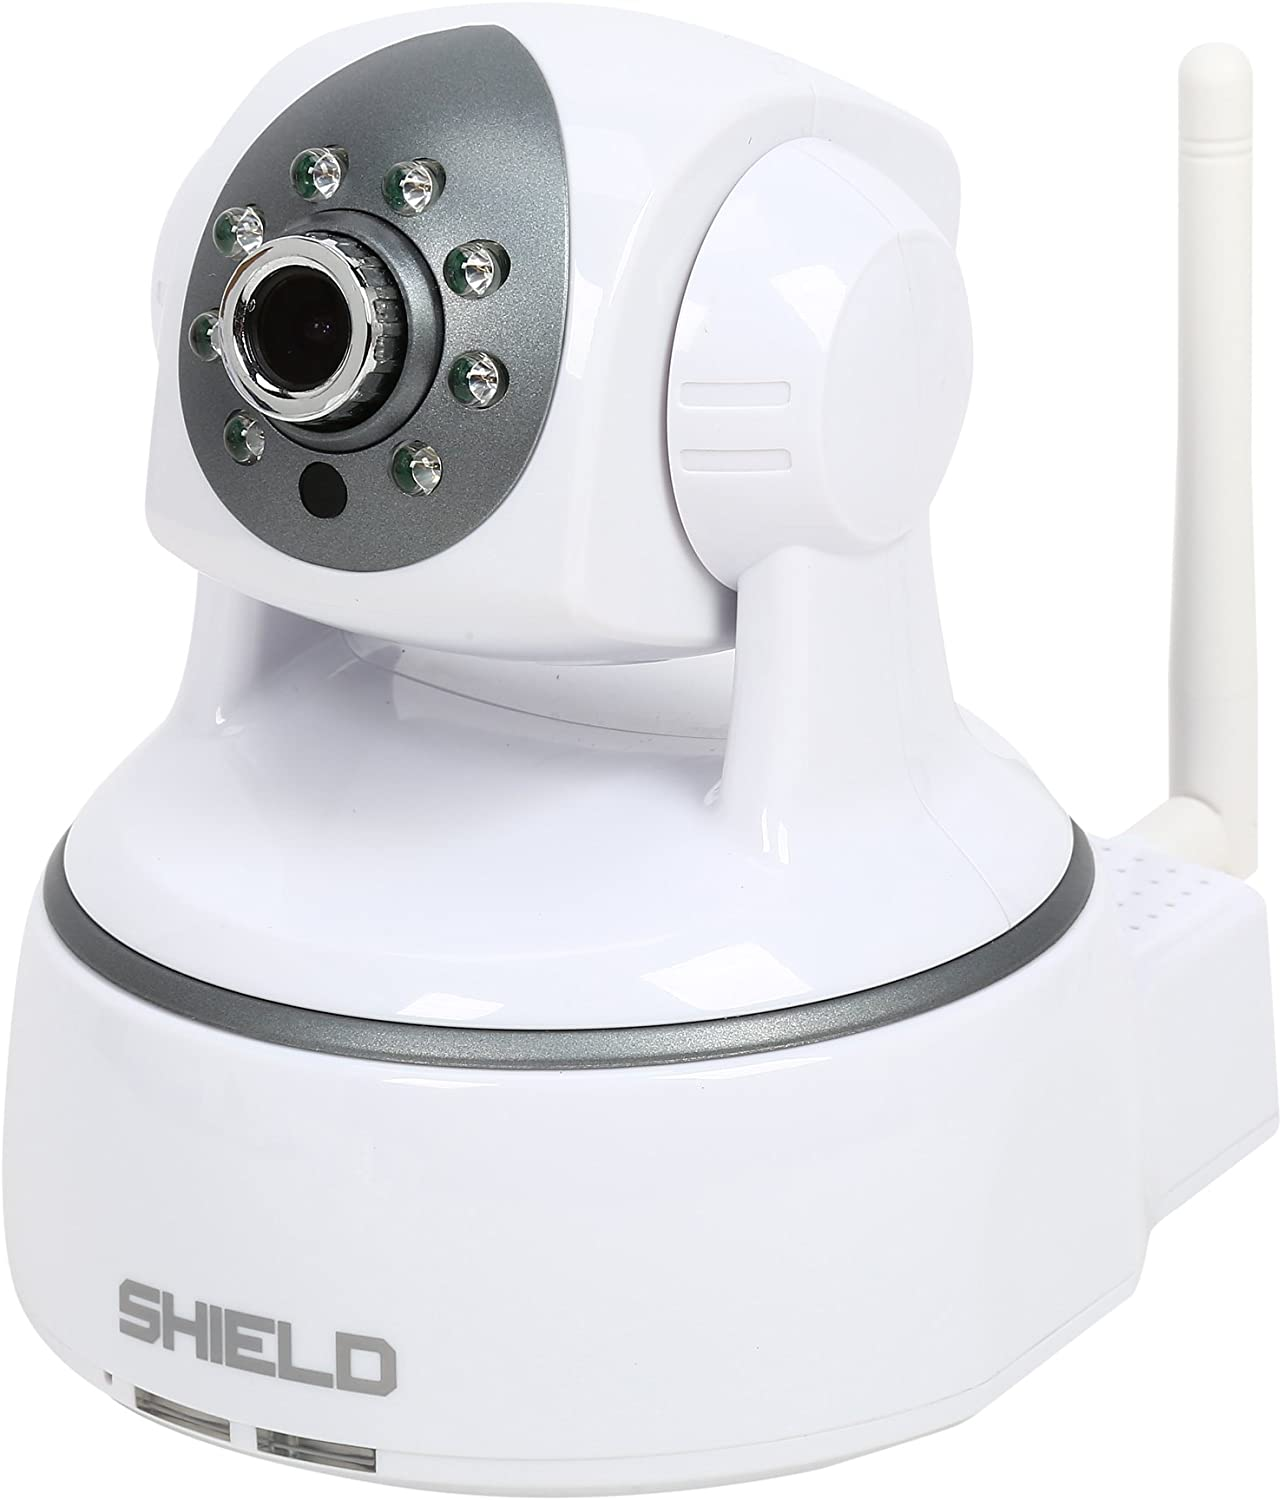 Rosewill SHIELDeye RSCM-13601W, Pan and Tilt, Day/Night Wireless IP Camera with Easy Installation and 2 Way Audio